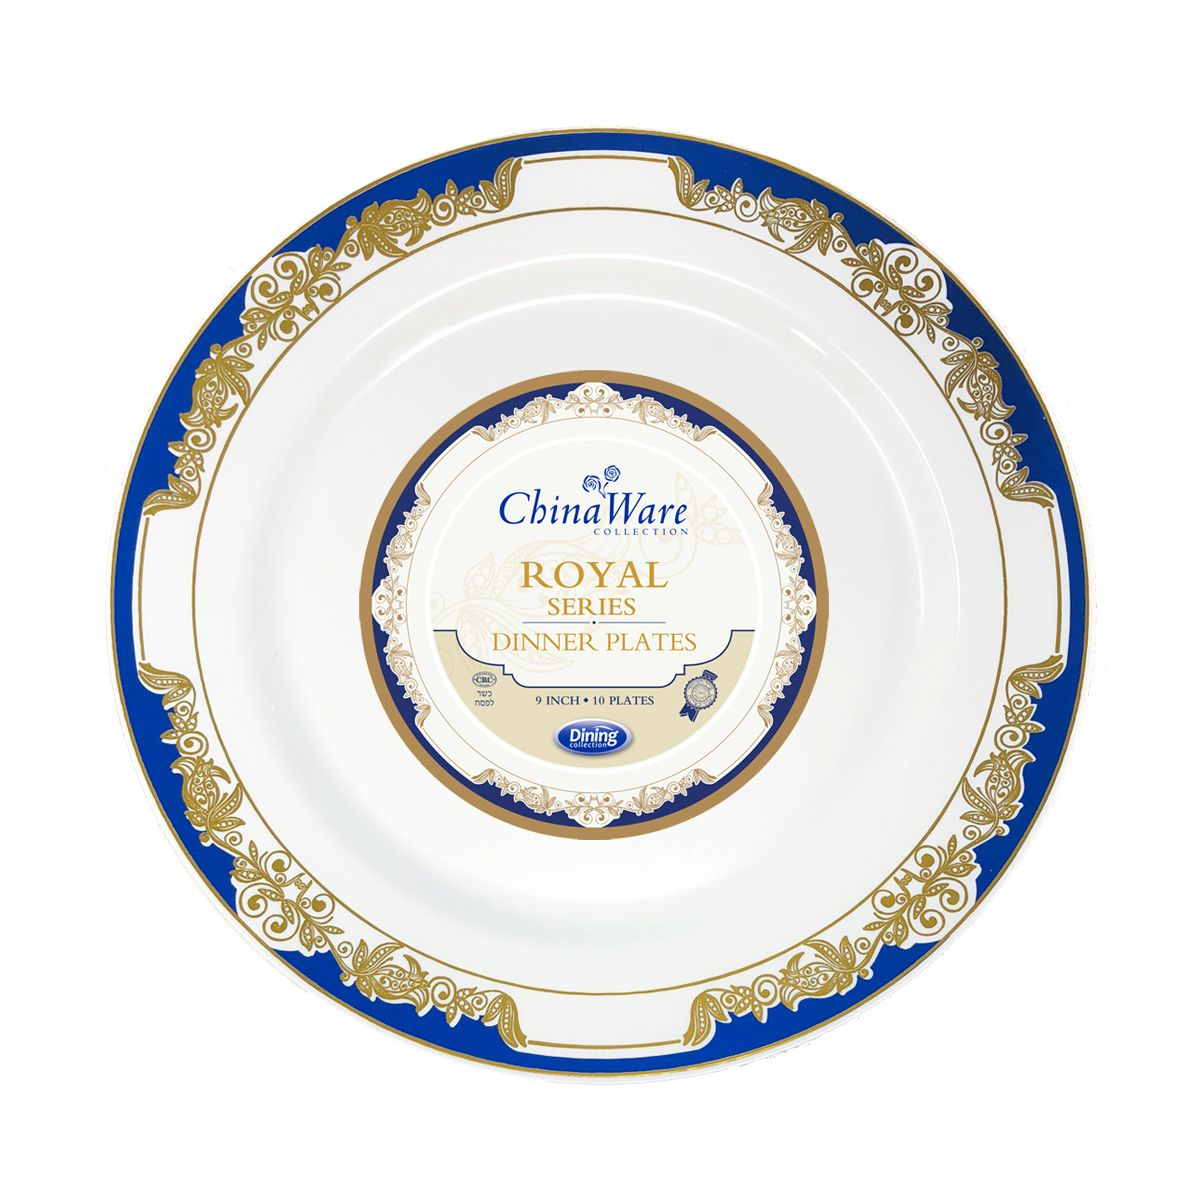 ChinaWare Royal 9  Dinner Plates - White/Cobalt/Gold - 10 Count ...  sc 1 st  Fantastic Inc & ChinaWare Royal 9